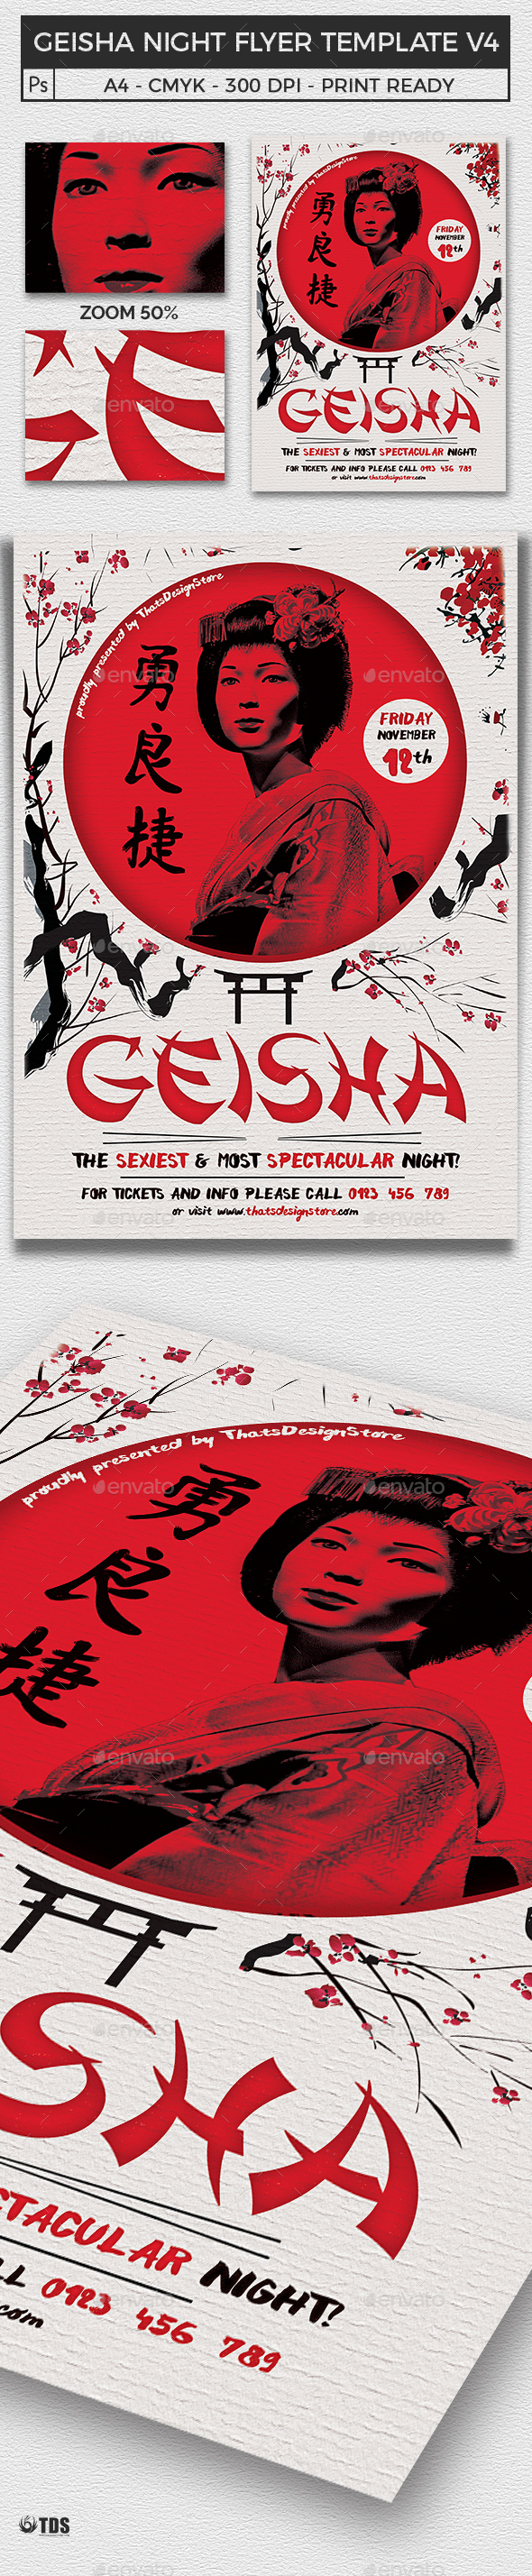 Geisha Night Flyer Template V4 - Clubs & Parties Events